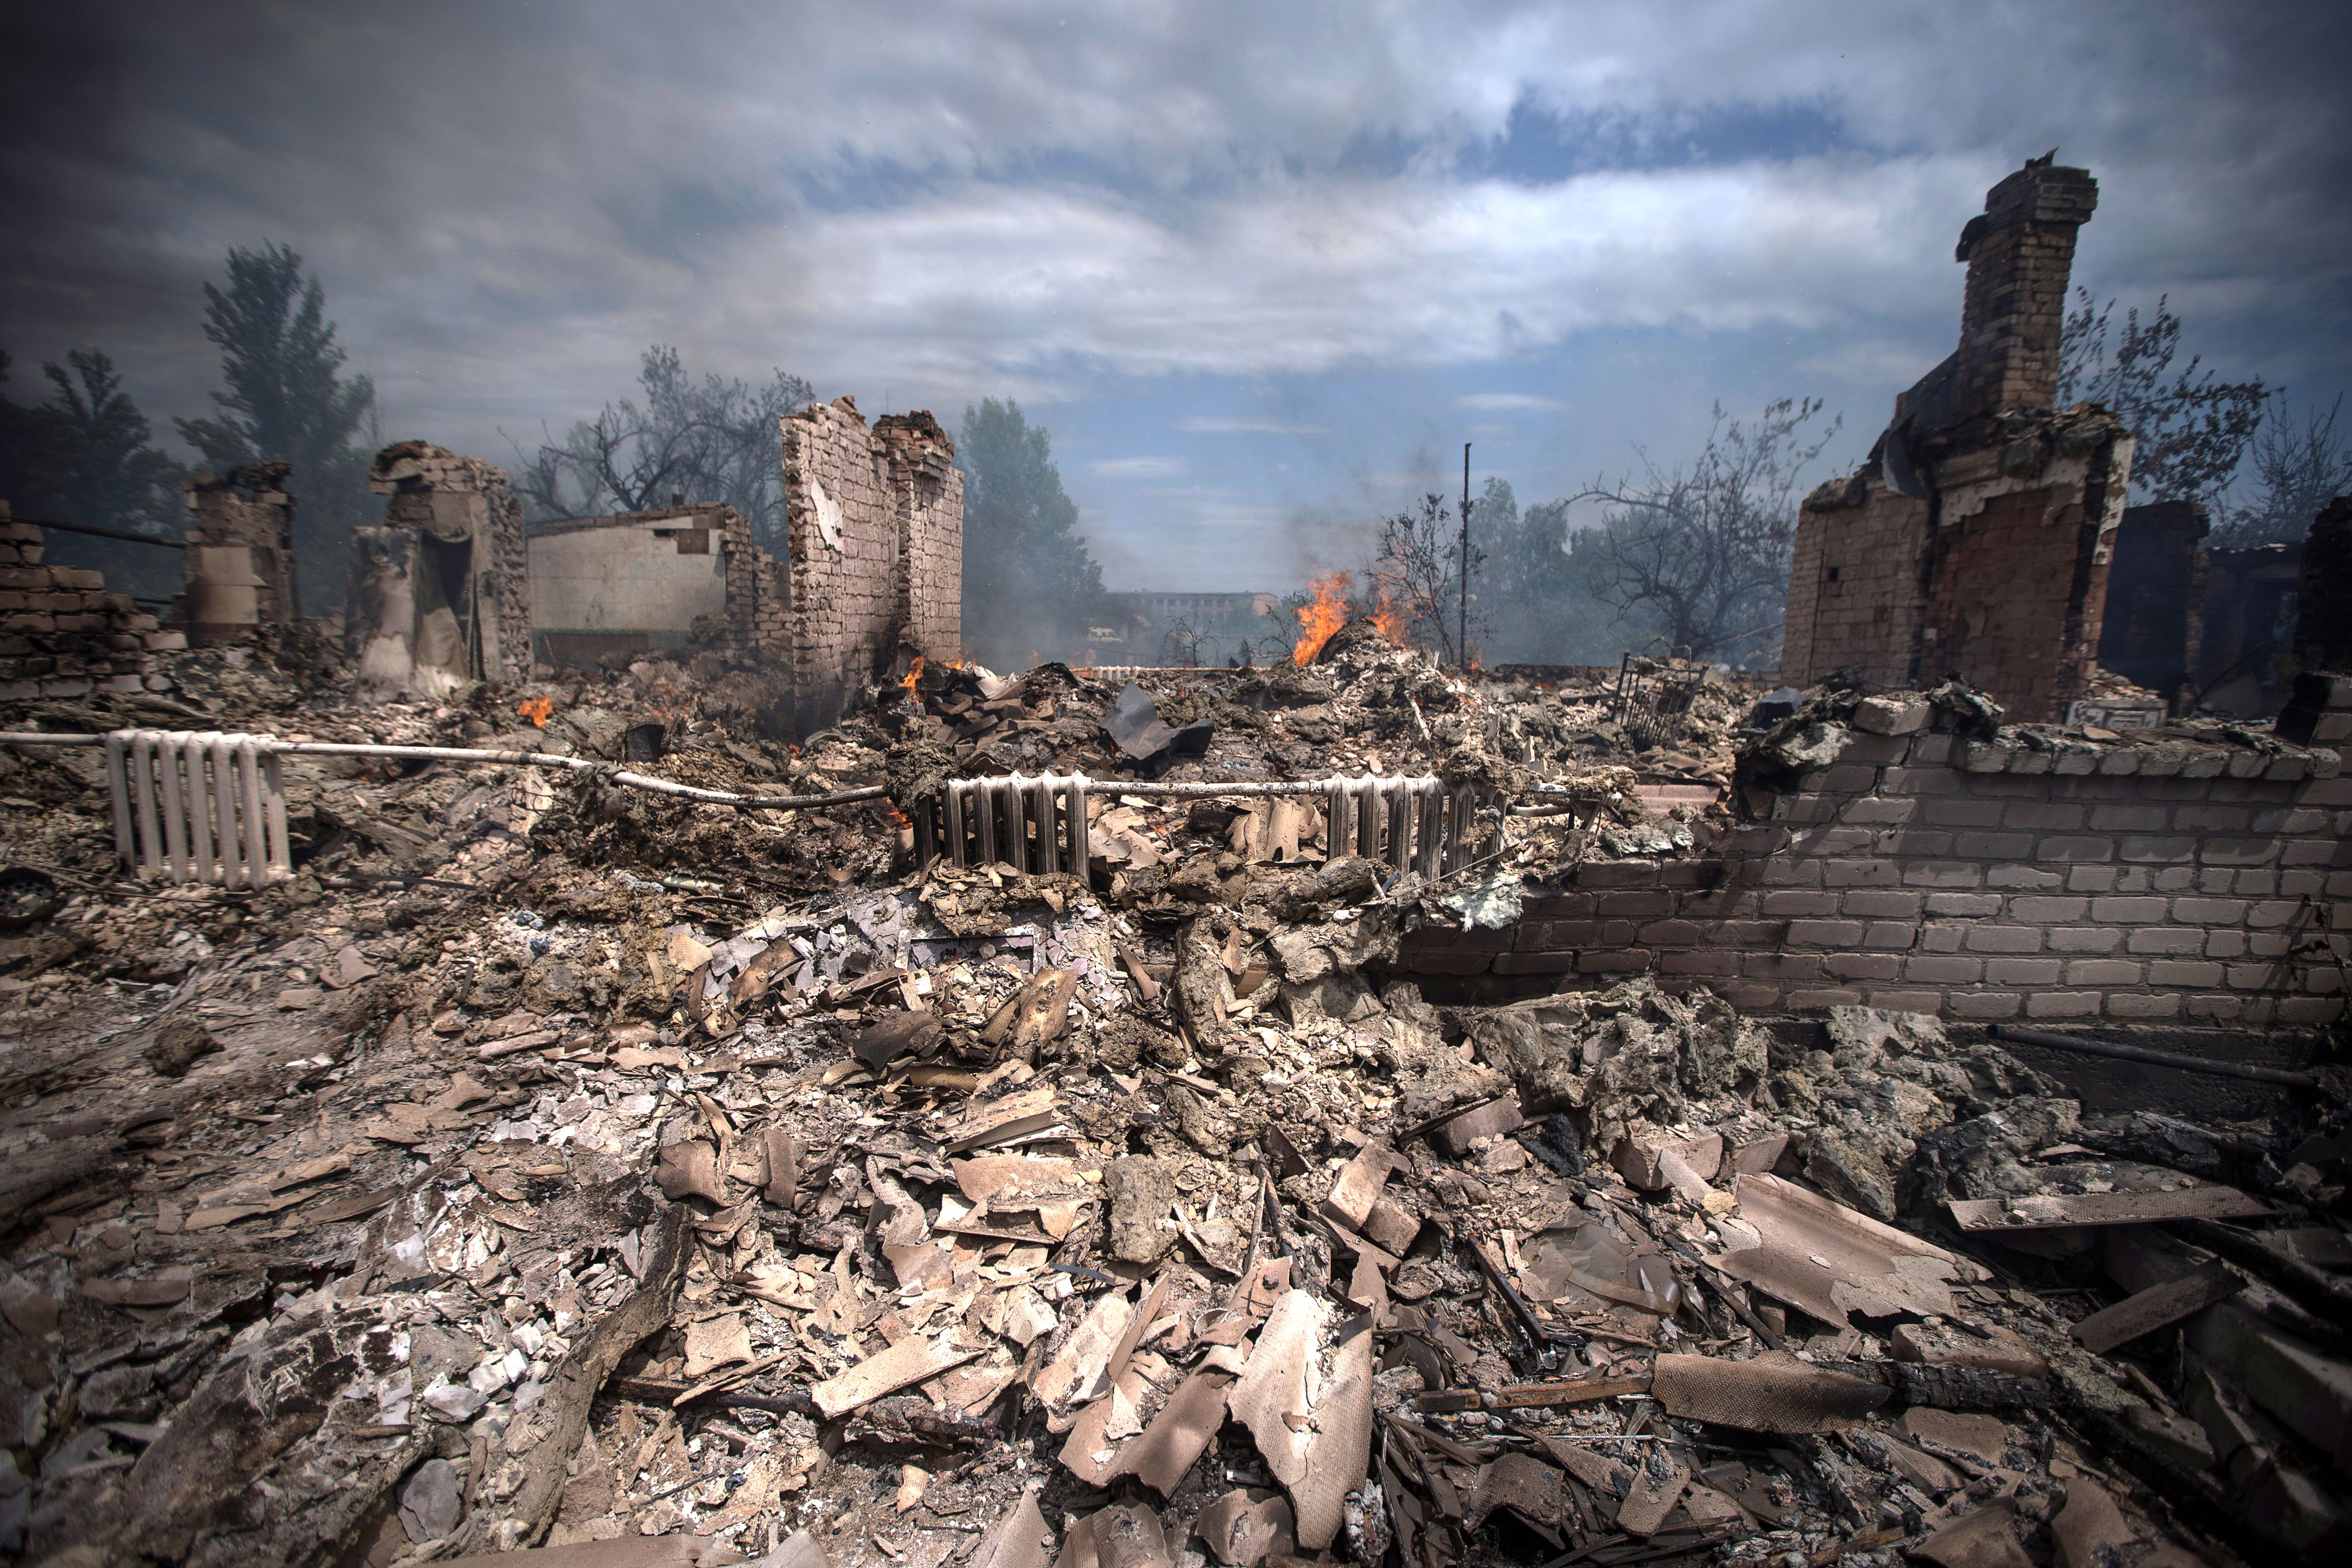 A destroyed house in Stanytsia Luhanska, eastern Ukraine. File photo